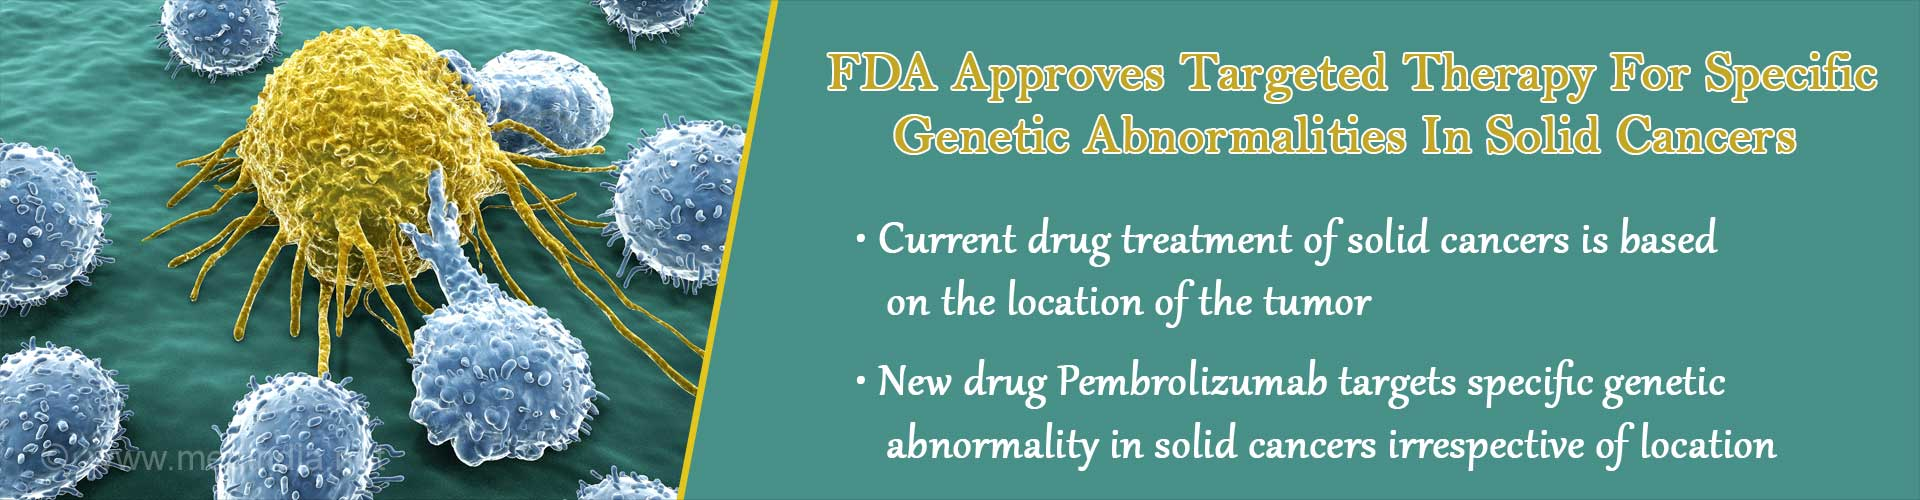 FDA approves targeted therapy for specific genetic abnormalities in solid cancers - Current drug treatment of solid cancers is based on the location of the tumor - New drug Prembrolizumab targets specific genetic abnormality in solid cancers irrespective of location